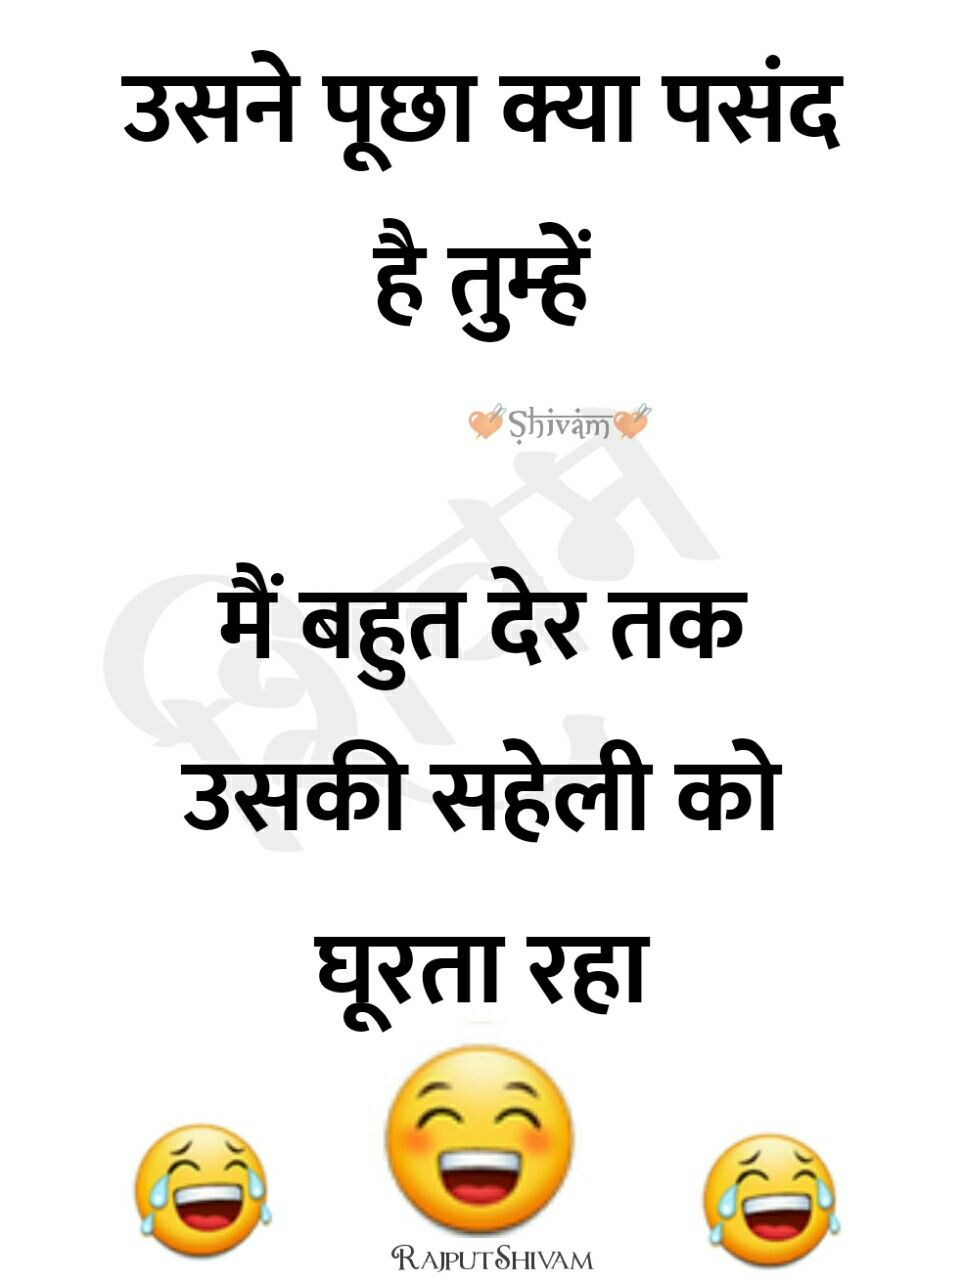 Pin By Lucky On Jokes Some Funny Jokes Fun Quotes Funny Funny Words